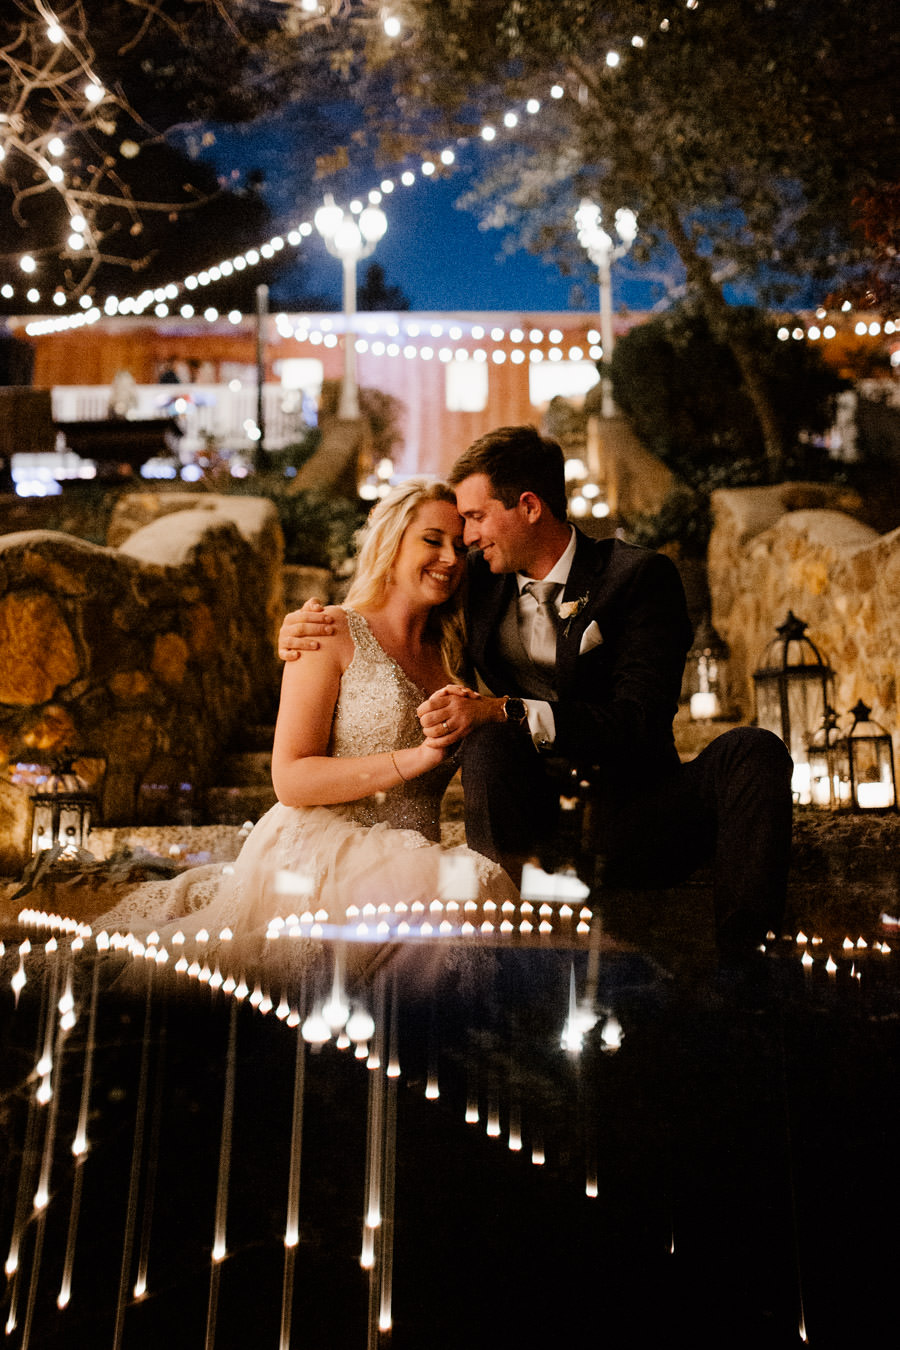 reception - moments in between intimate moments of bride and groom down the stairs with lanterns on their sides